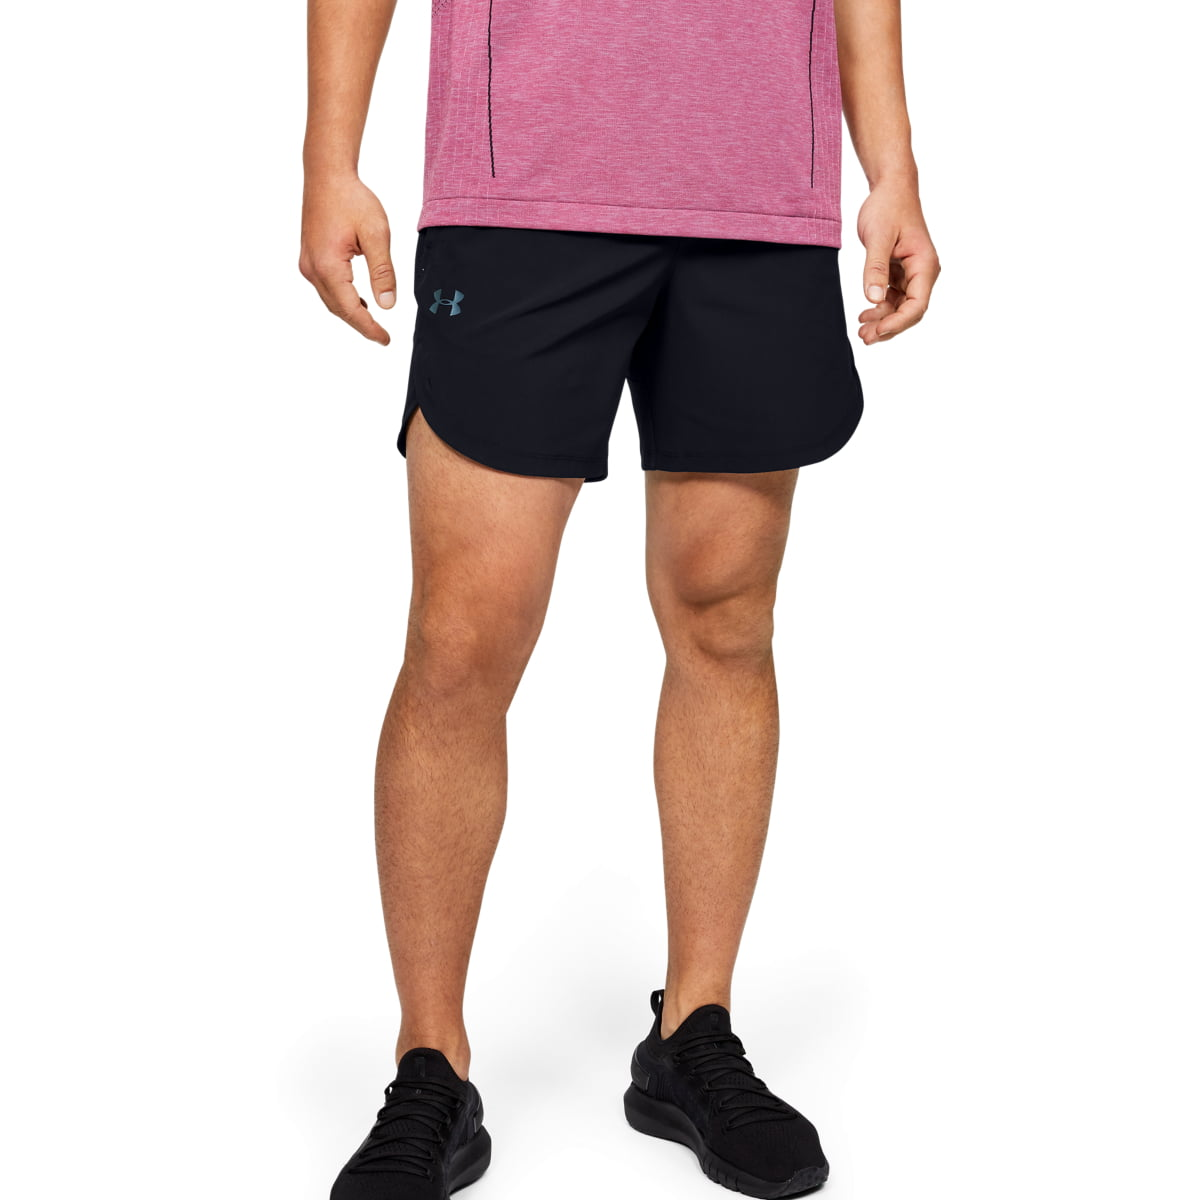 Pantaloni Scurti Under Armour Stretch Woven Shorts